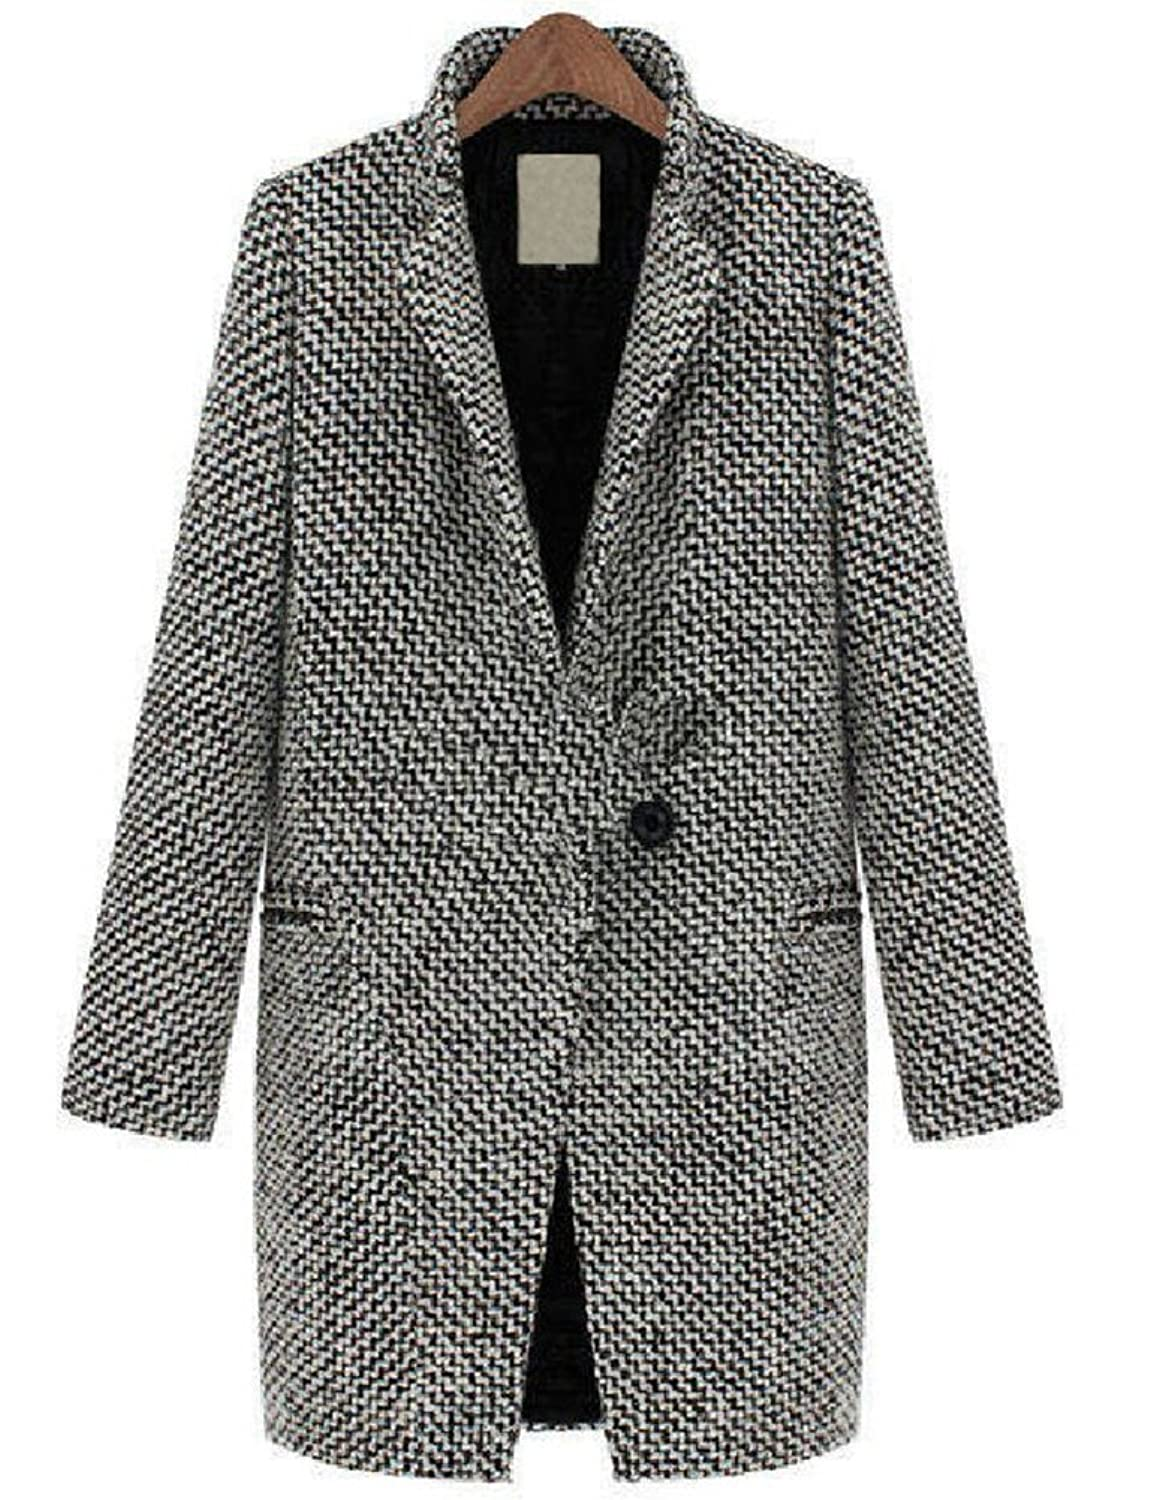 Womens Classic Lapel Houndstooth Woolen Blends Long Trench Coat Outerwear Jacket